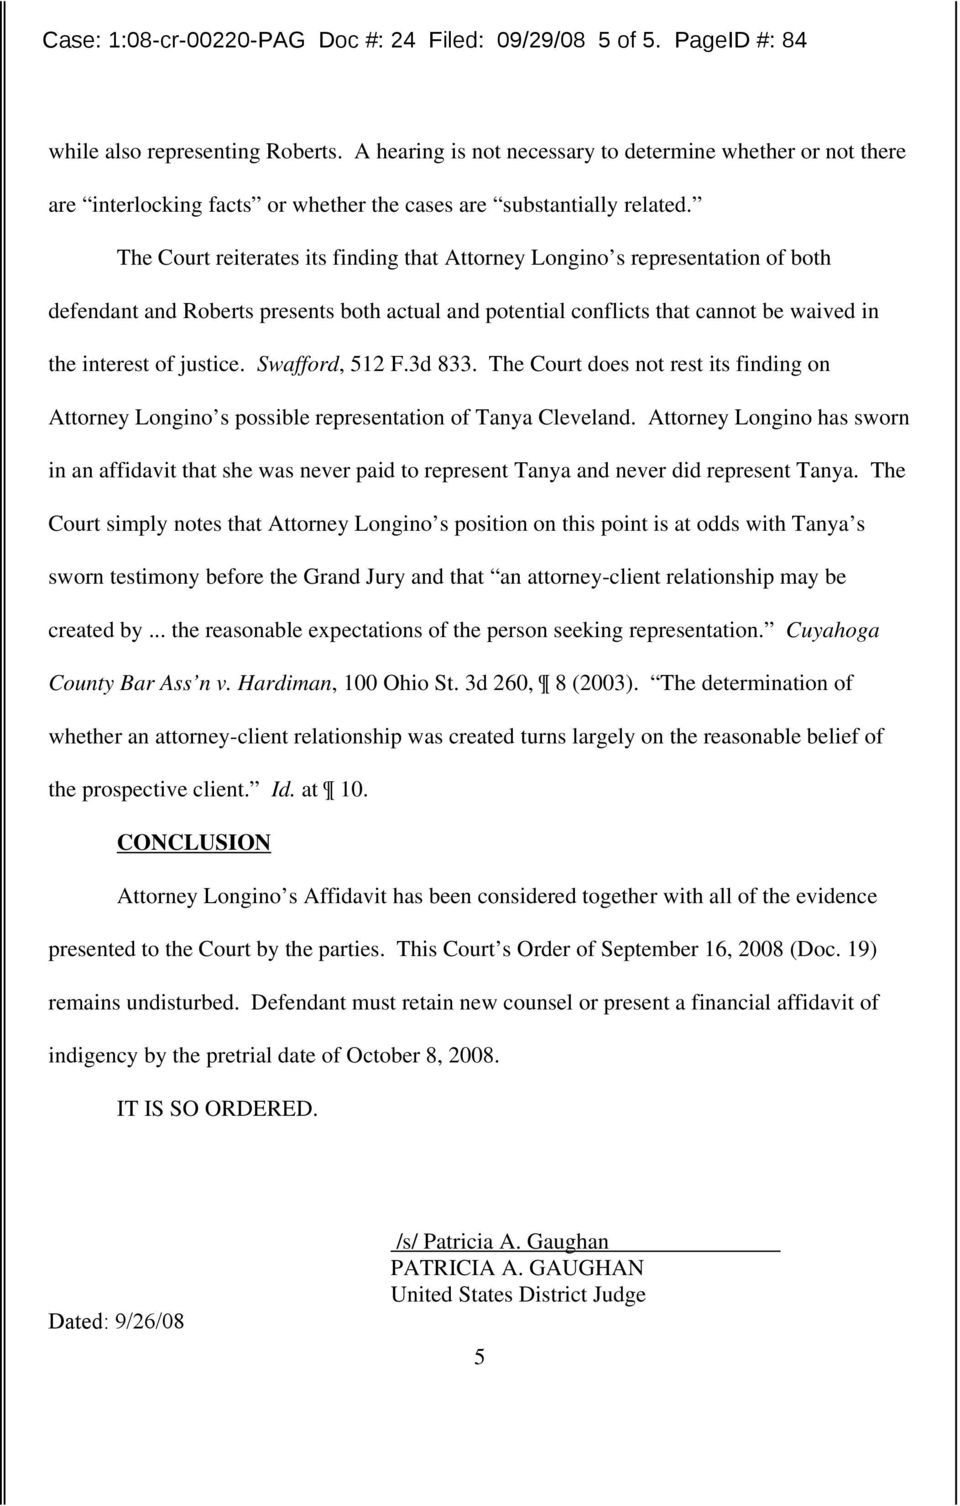 The Court reiterates its finding that Attorney Longino s representation of both defendant and Roberts presents both actual and potential conflicts that cannot be waived in the interest of justice.